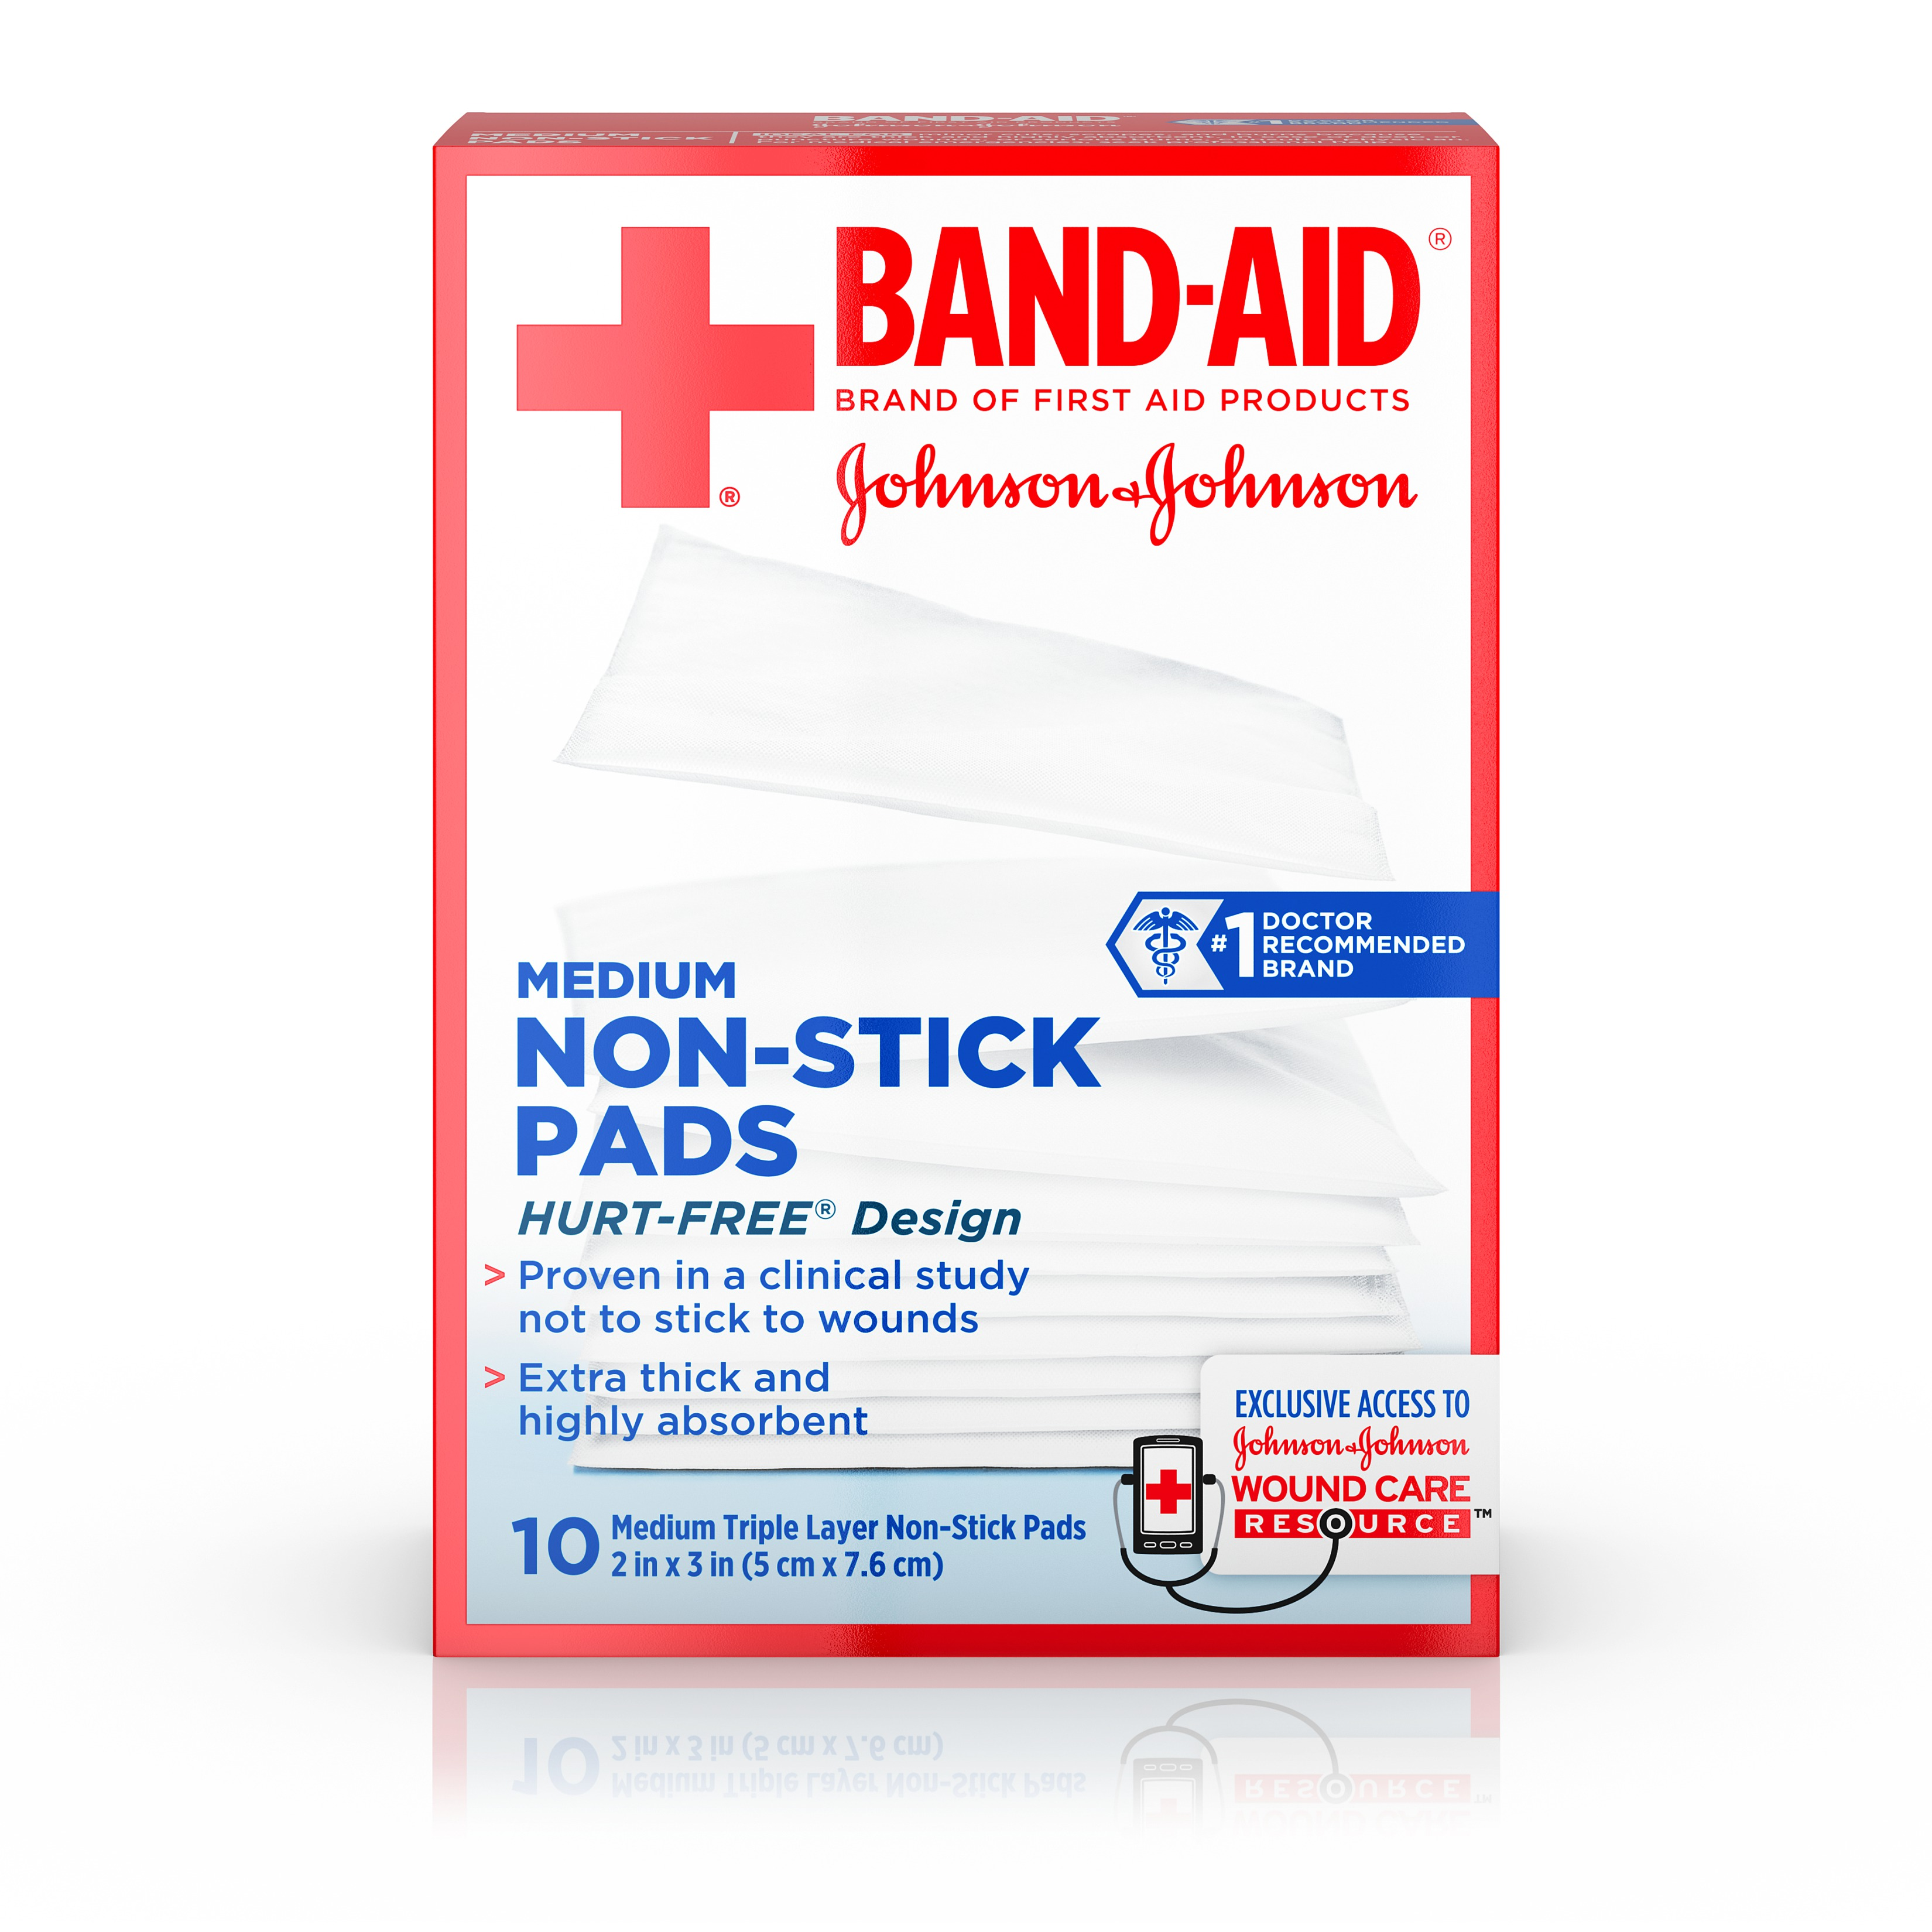 Band-Aid Brand Adhesive Bandages, Medium Non-Stick Pads for Minor Cuts, 10 2-inch x 3-inch Pads